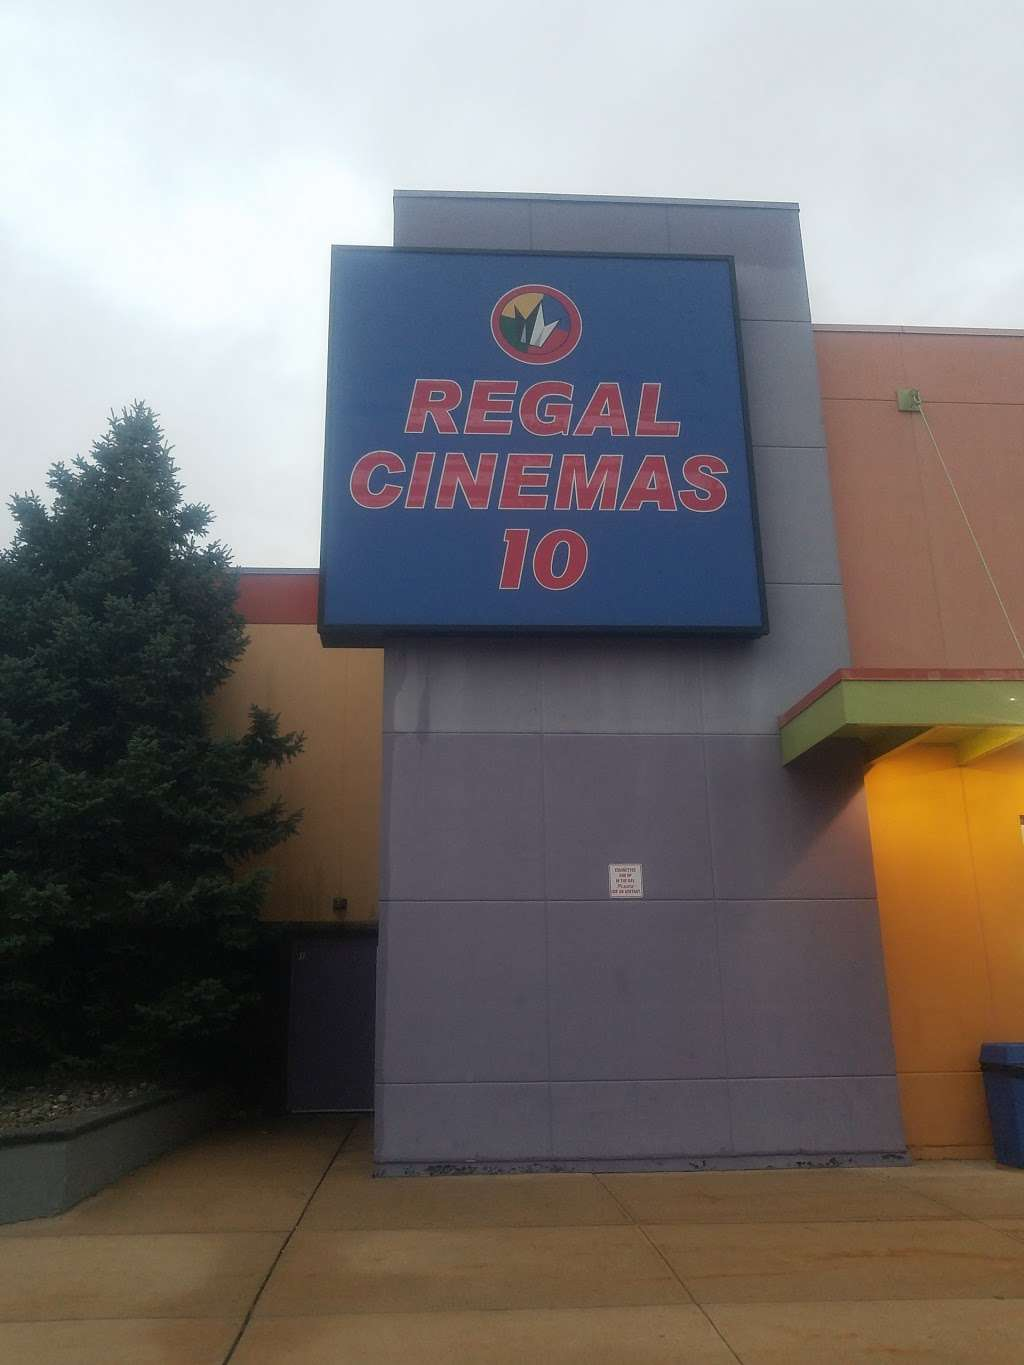 regal cinemas manahawkin 10 733 nj 72 manahawkin nj 08050 usa regal cinemas manahawkin 10 733 nj 72